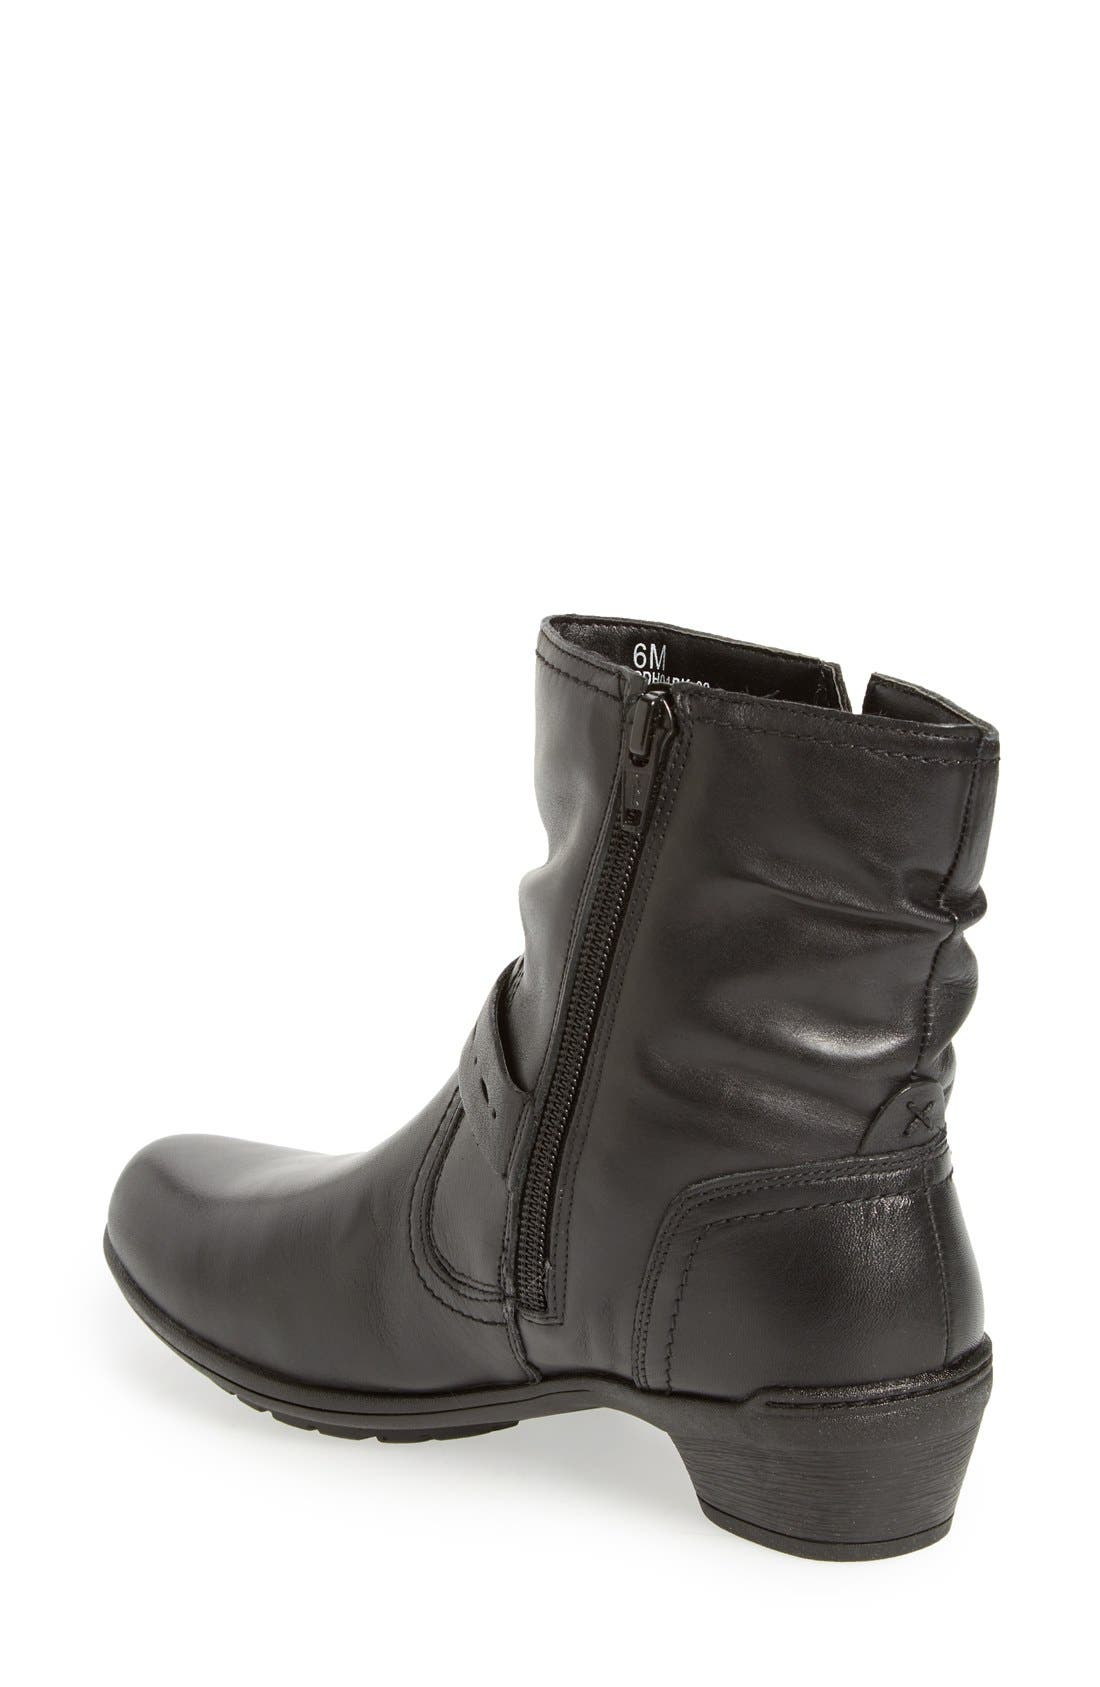 'Riley' Waterproof Buckle Strap Bootie,                             Alternate thumbnail 3, color,                             BLACK LEATHER